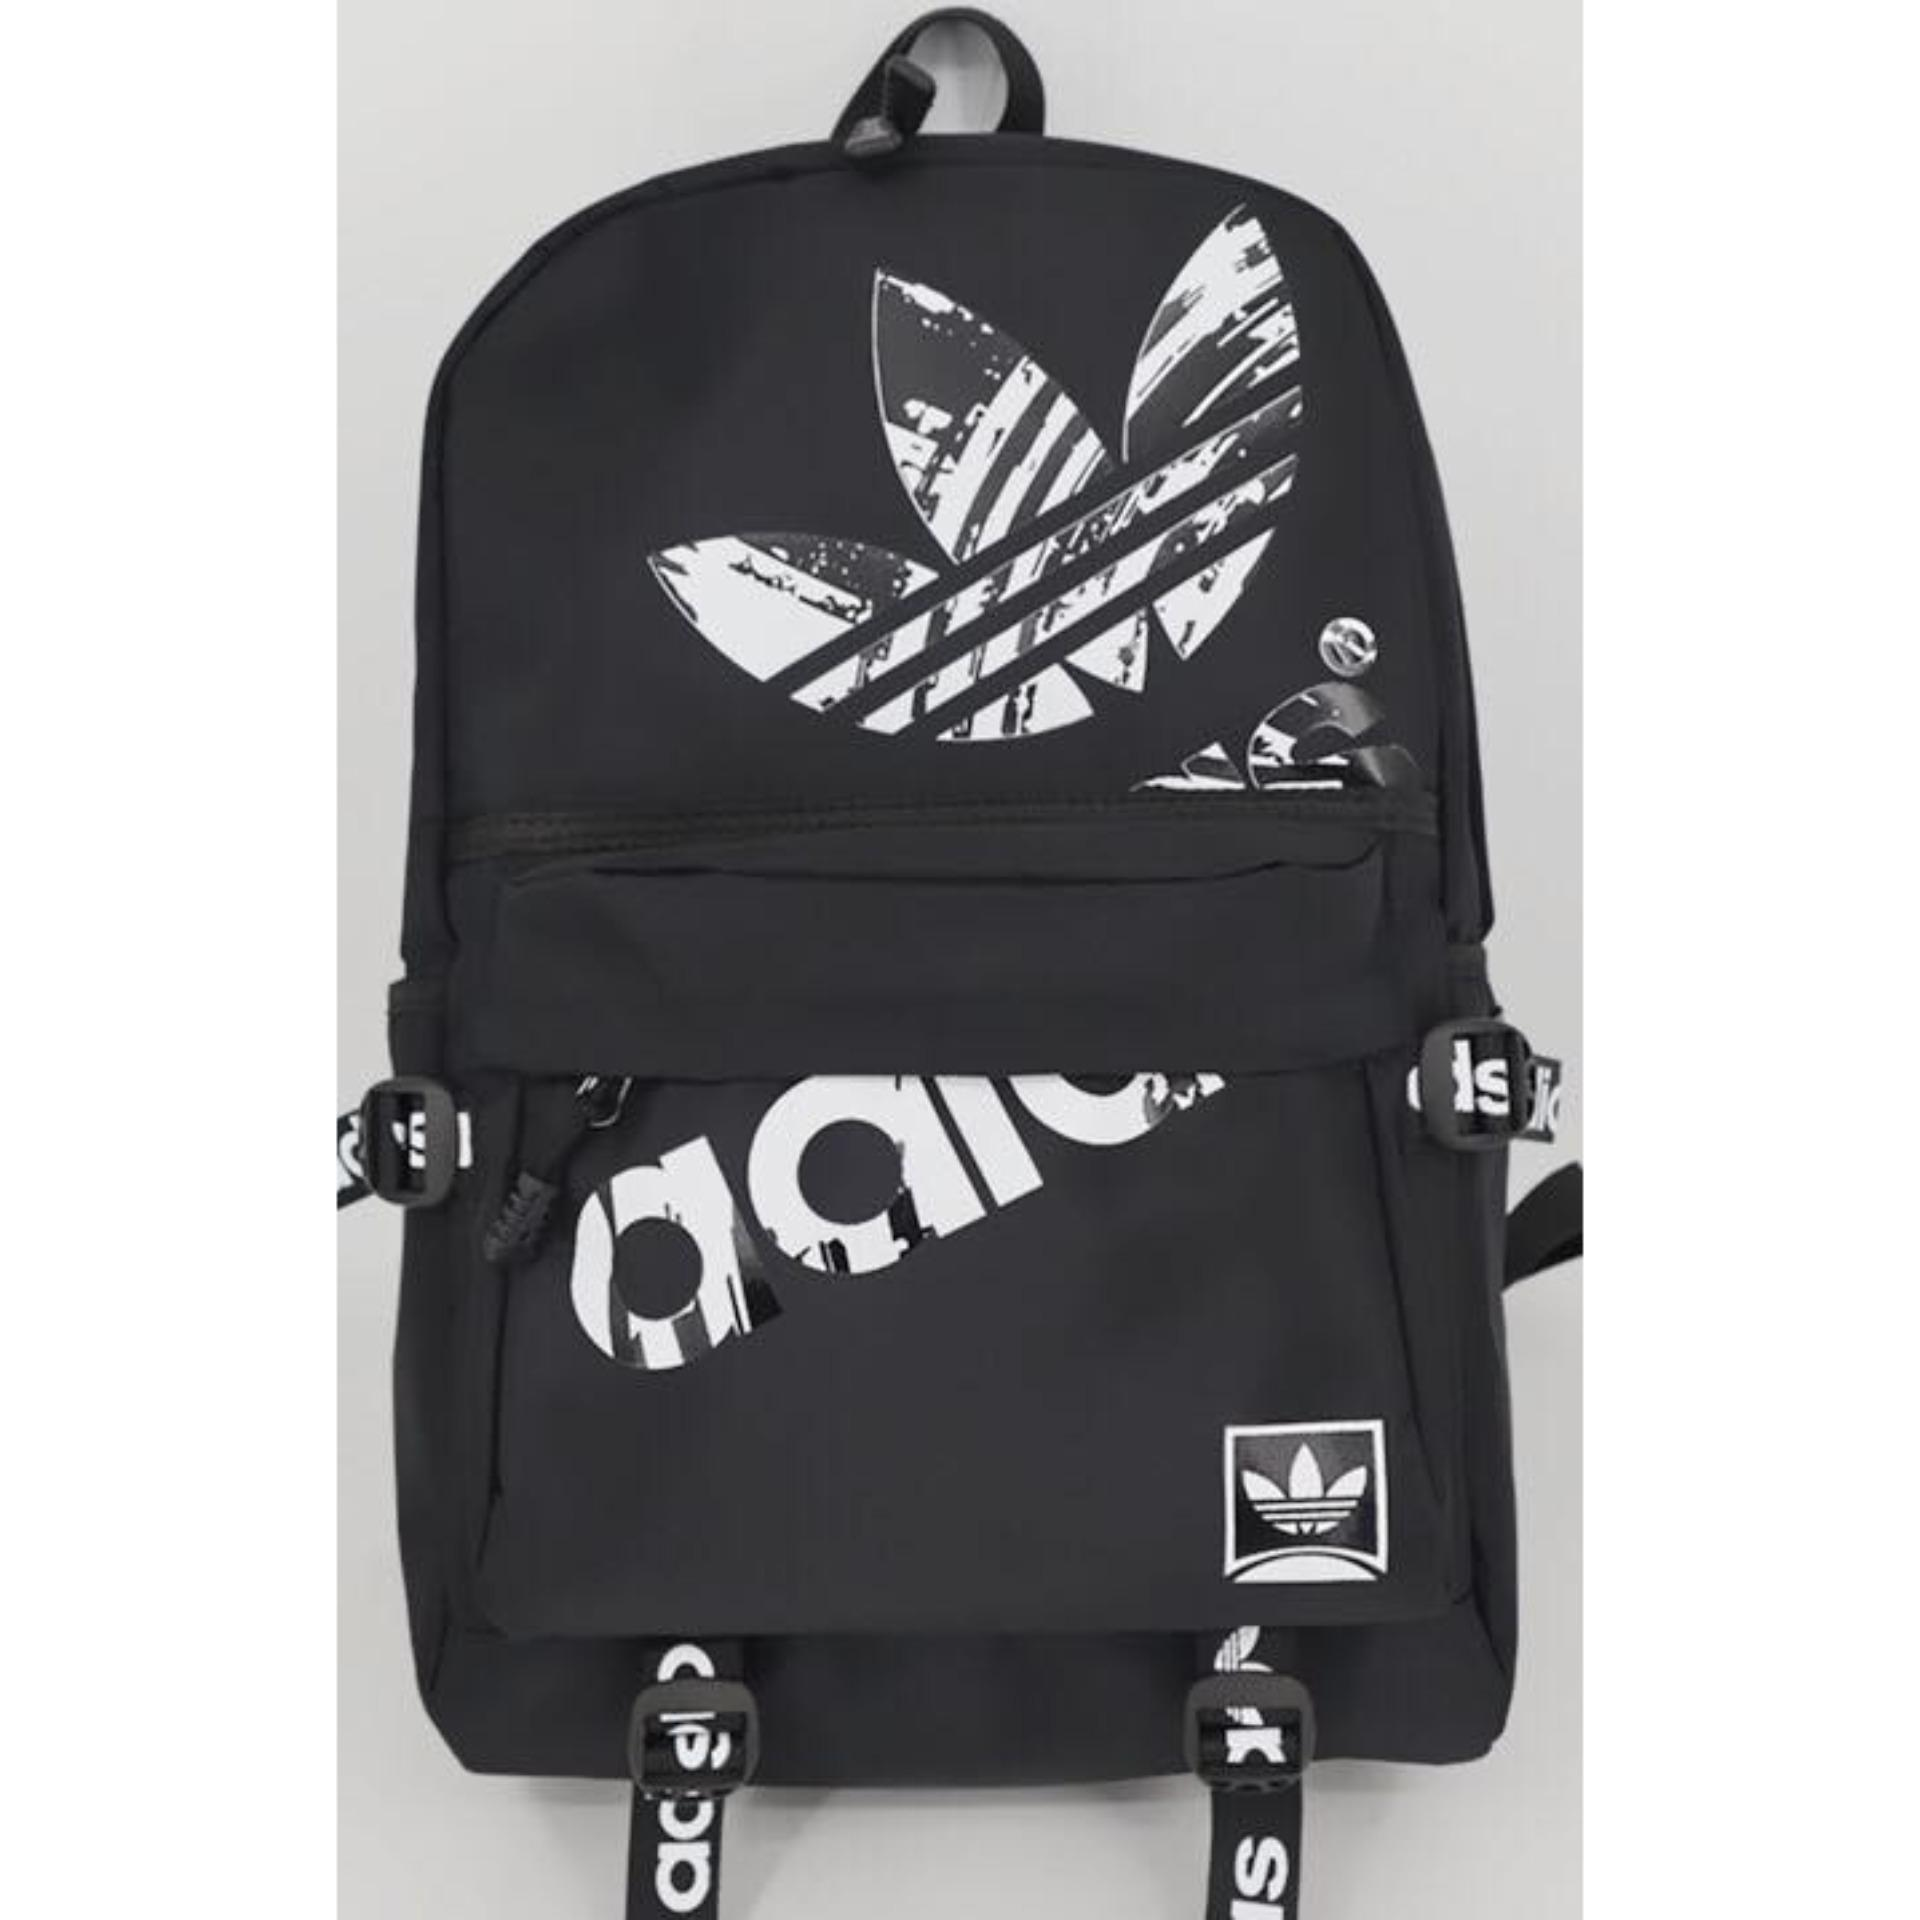 1ac80dc72d30 Adidas Travel Backpack Philippines